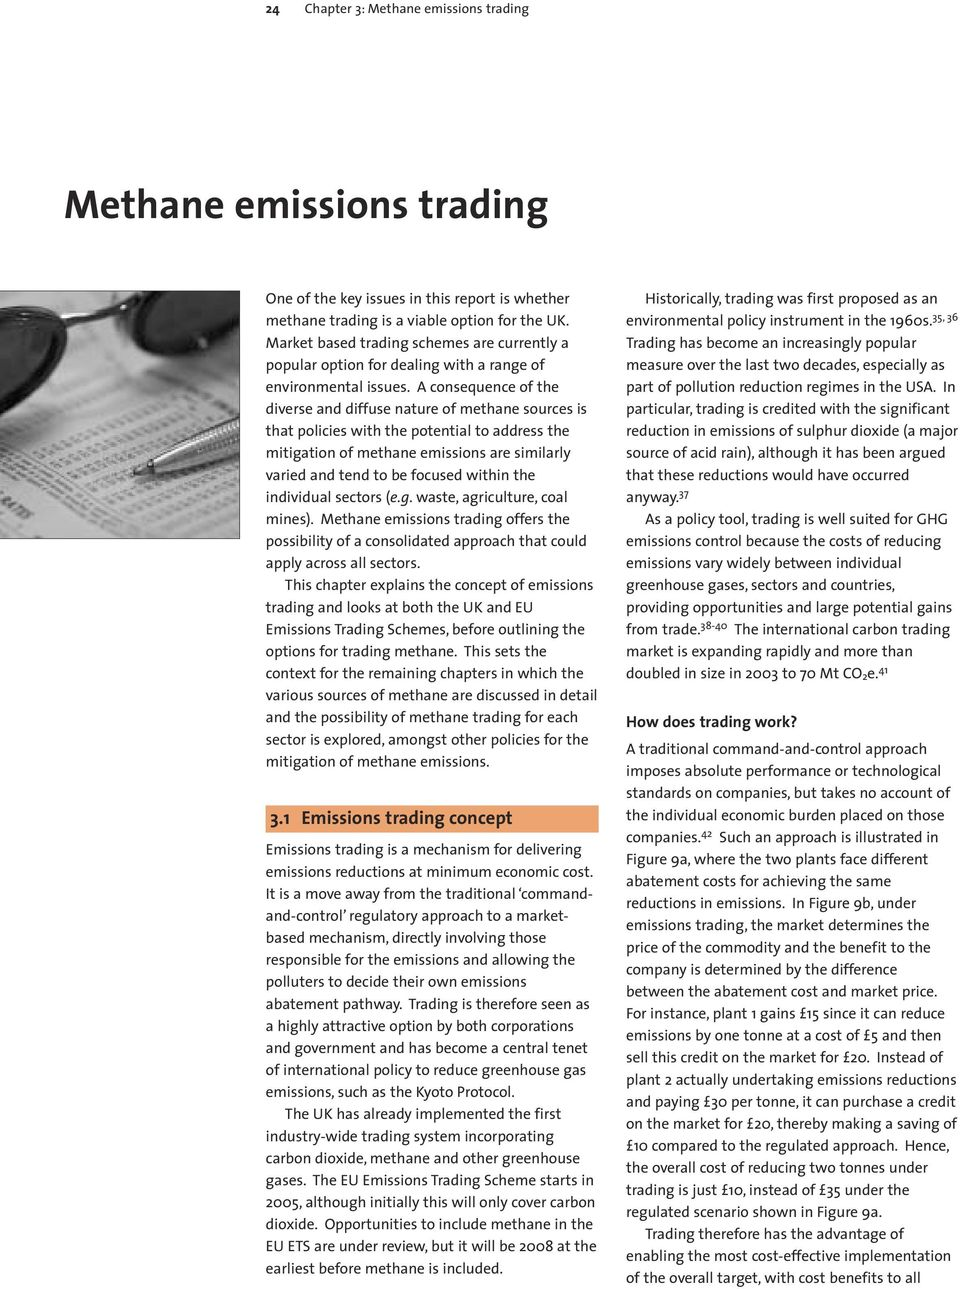 A consequence of the diverse and diffuse nature of methane sources is that policies with the potential to address the mitigation of methane emissions are similarly varied and tend to be focused